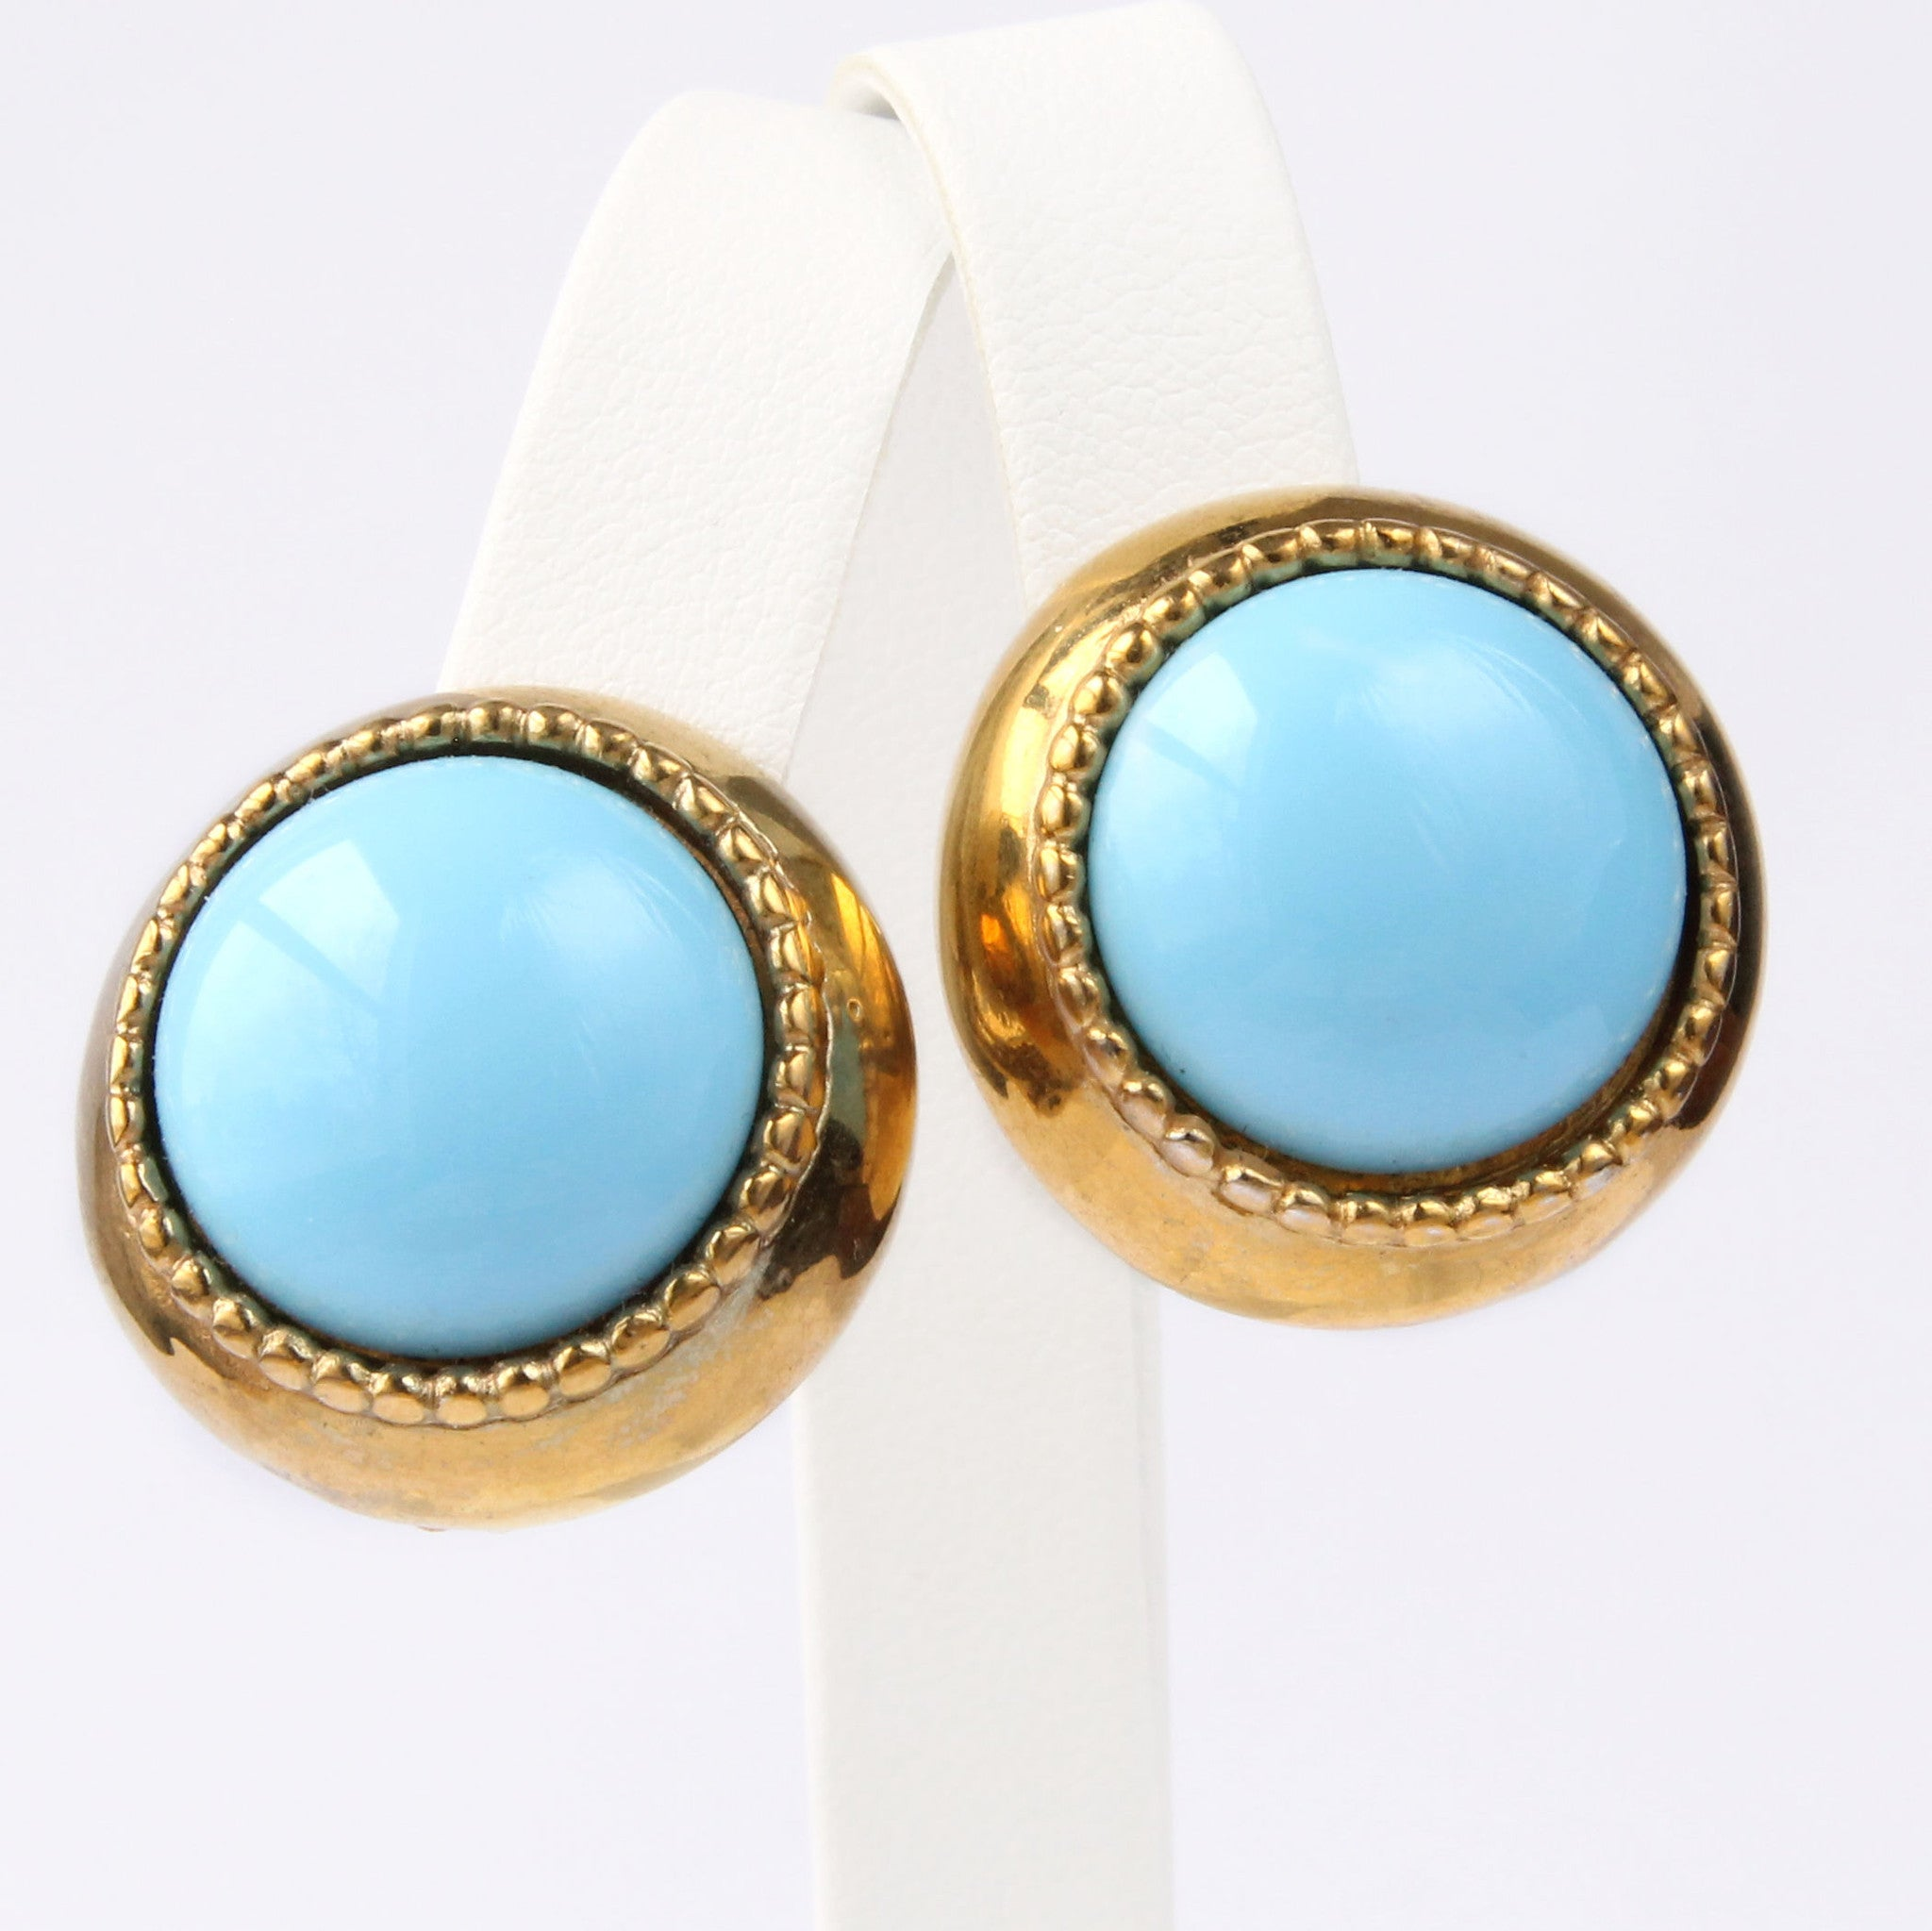 Donald Stannard Blue Cab Clip Earrings Vintage 1980s - Flotsam from Michigan - 1